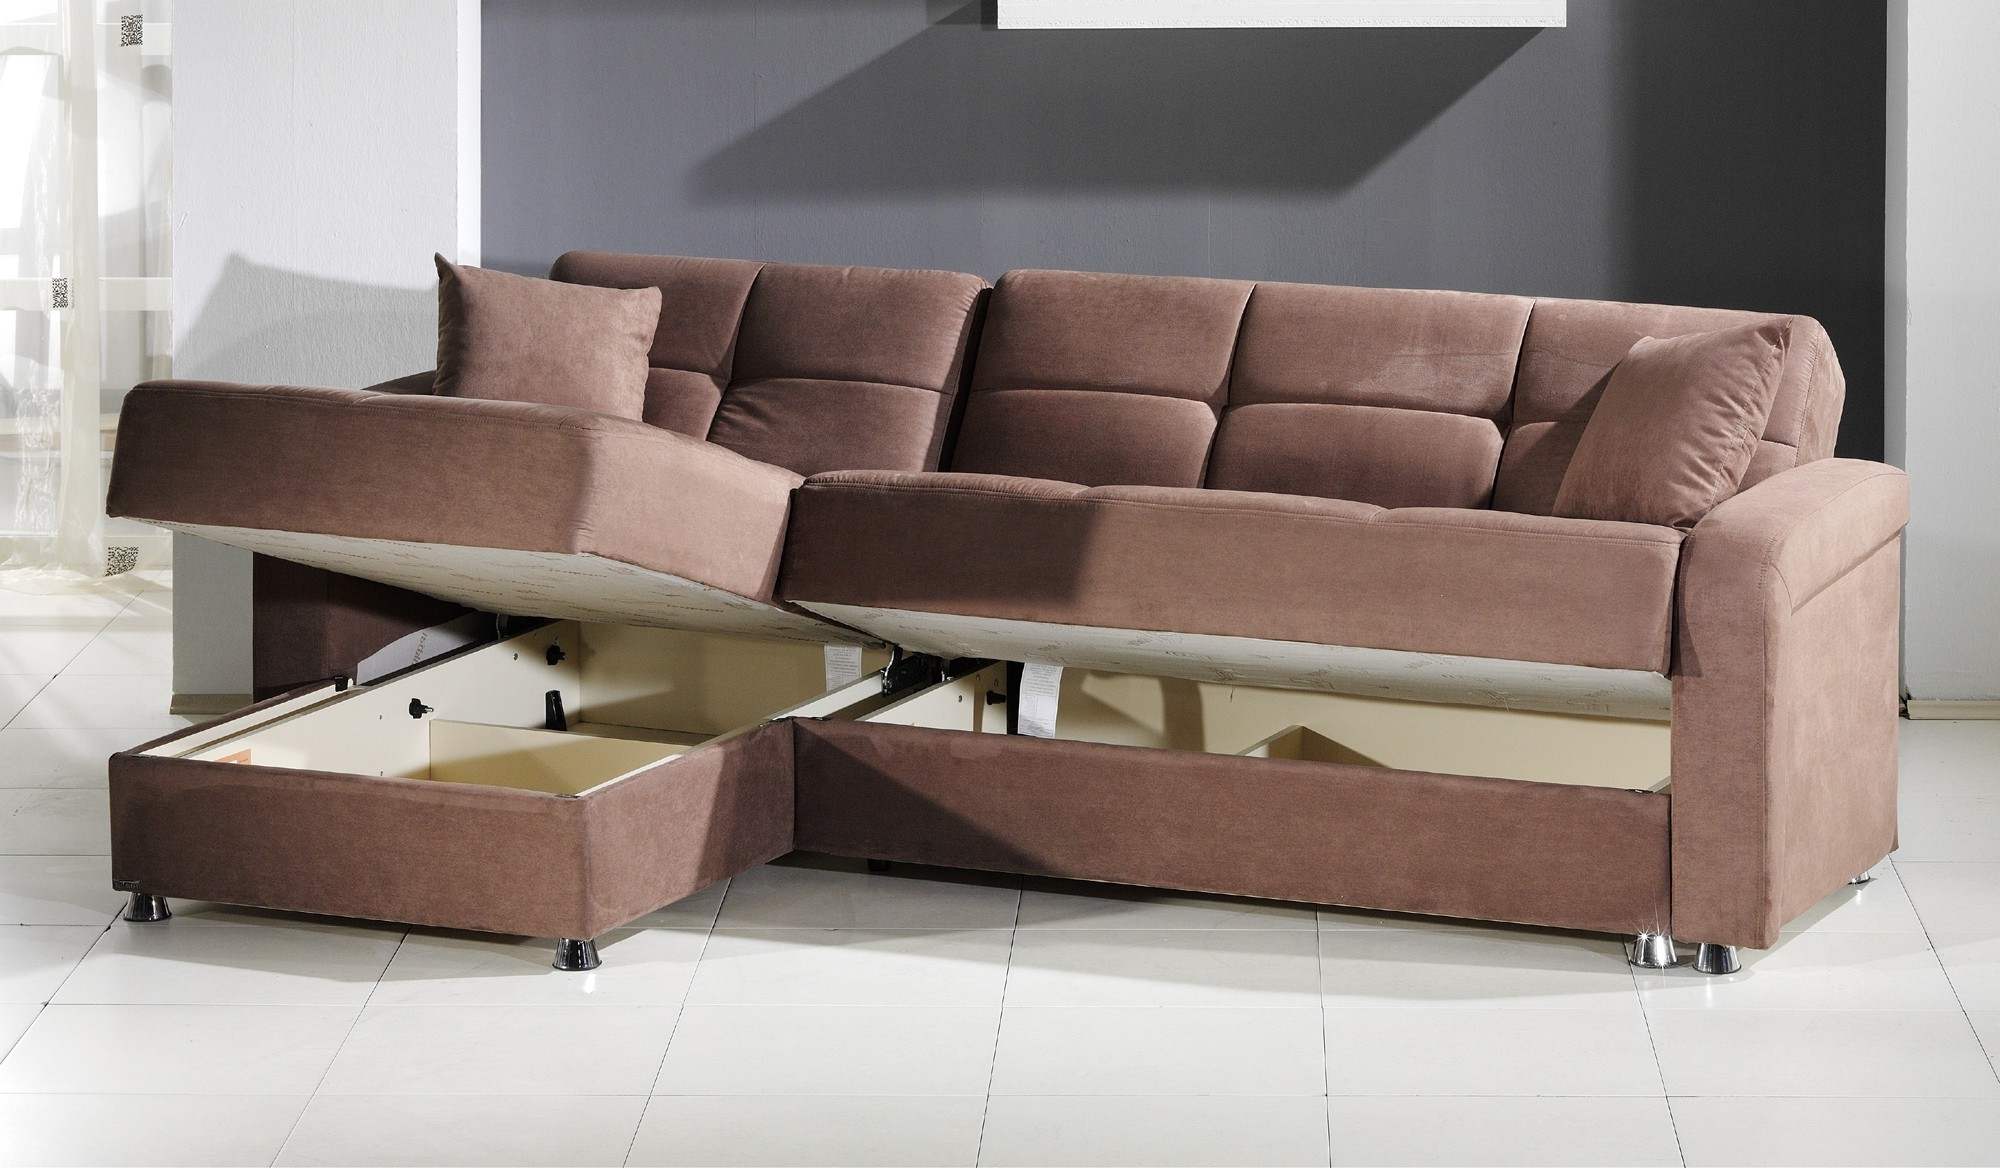 Sectional Sleeper Sofa Ikea Sectional Sofa With Storage Underneath In Widely Used Sectional Sleeper Sofas With Ottoman (View 9 of 15)